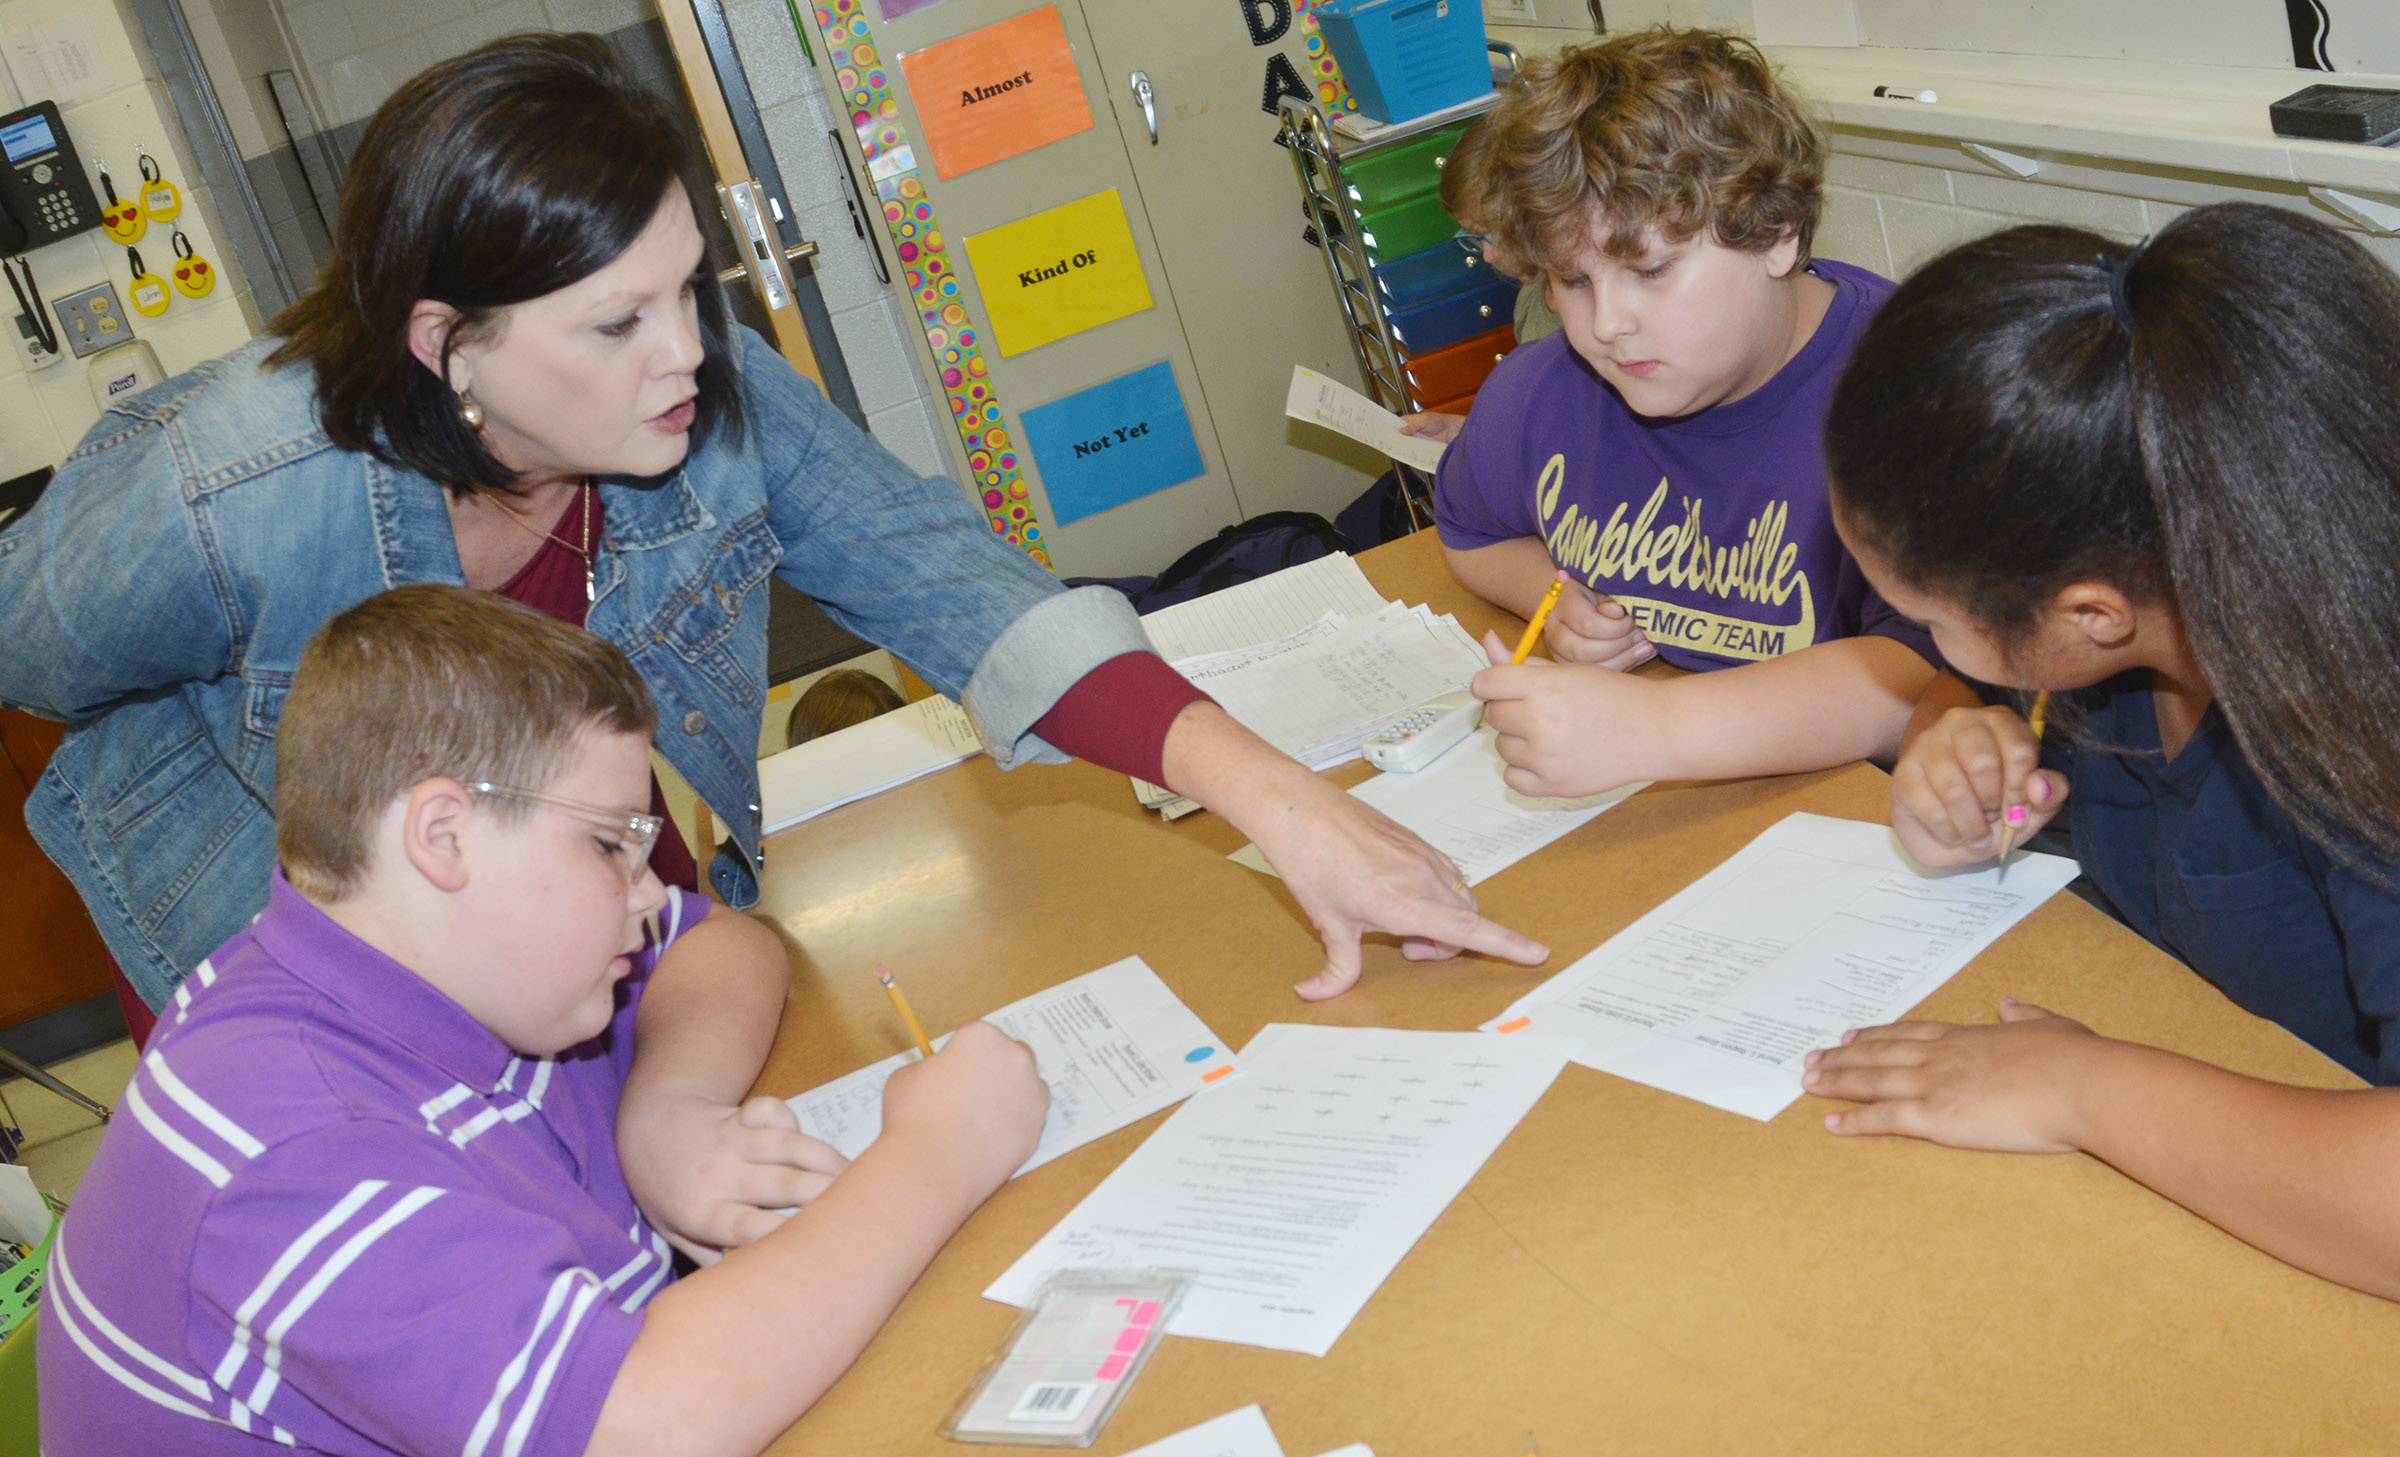 CES fifth-grade teacher Lisa Kearney talks to her students, from left, Ian Creason, Zeke Harris and Kenya Bridgewater.